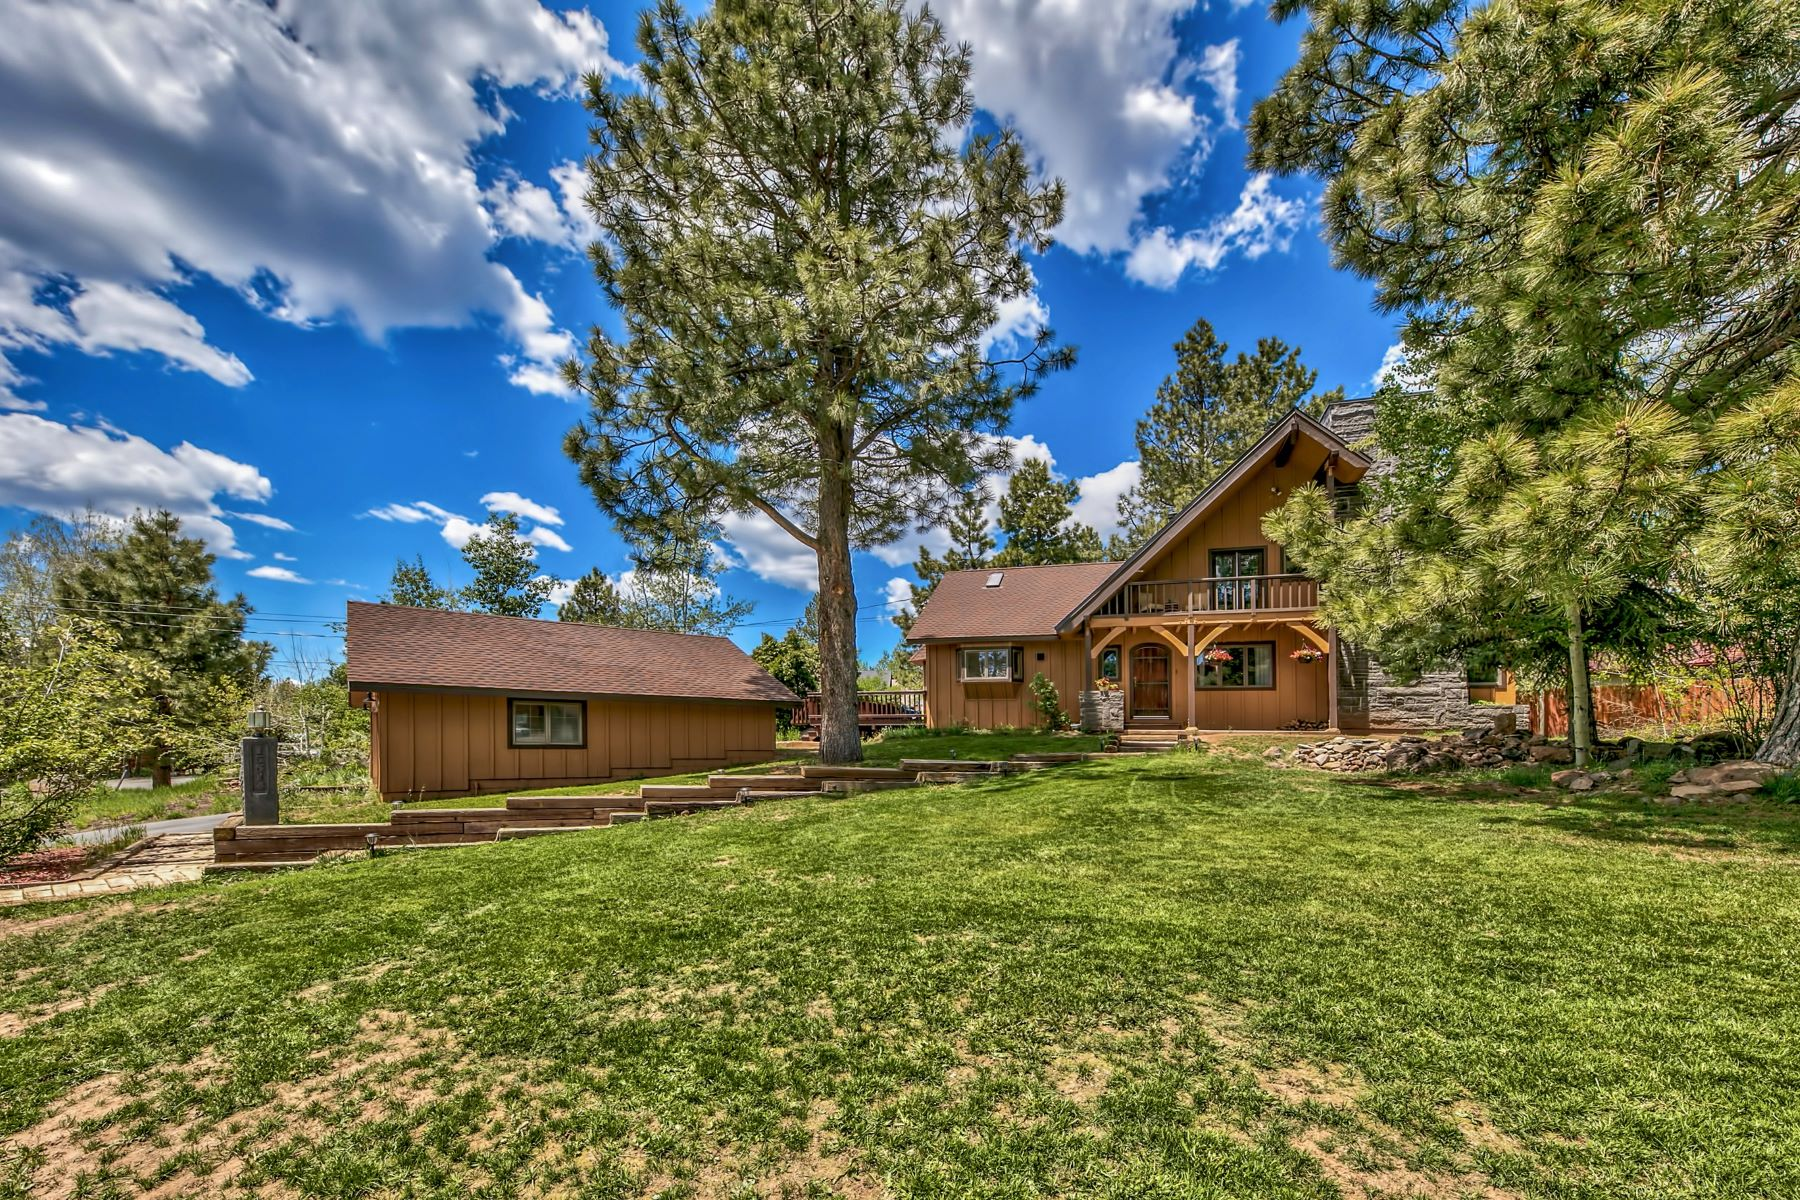 Single Family Homes for Active at 15514 Archery Way, Truckee, CA 15514 Archery Way Truckee, California 96161 United States